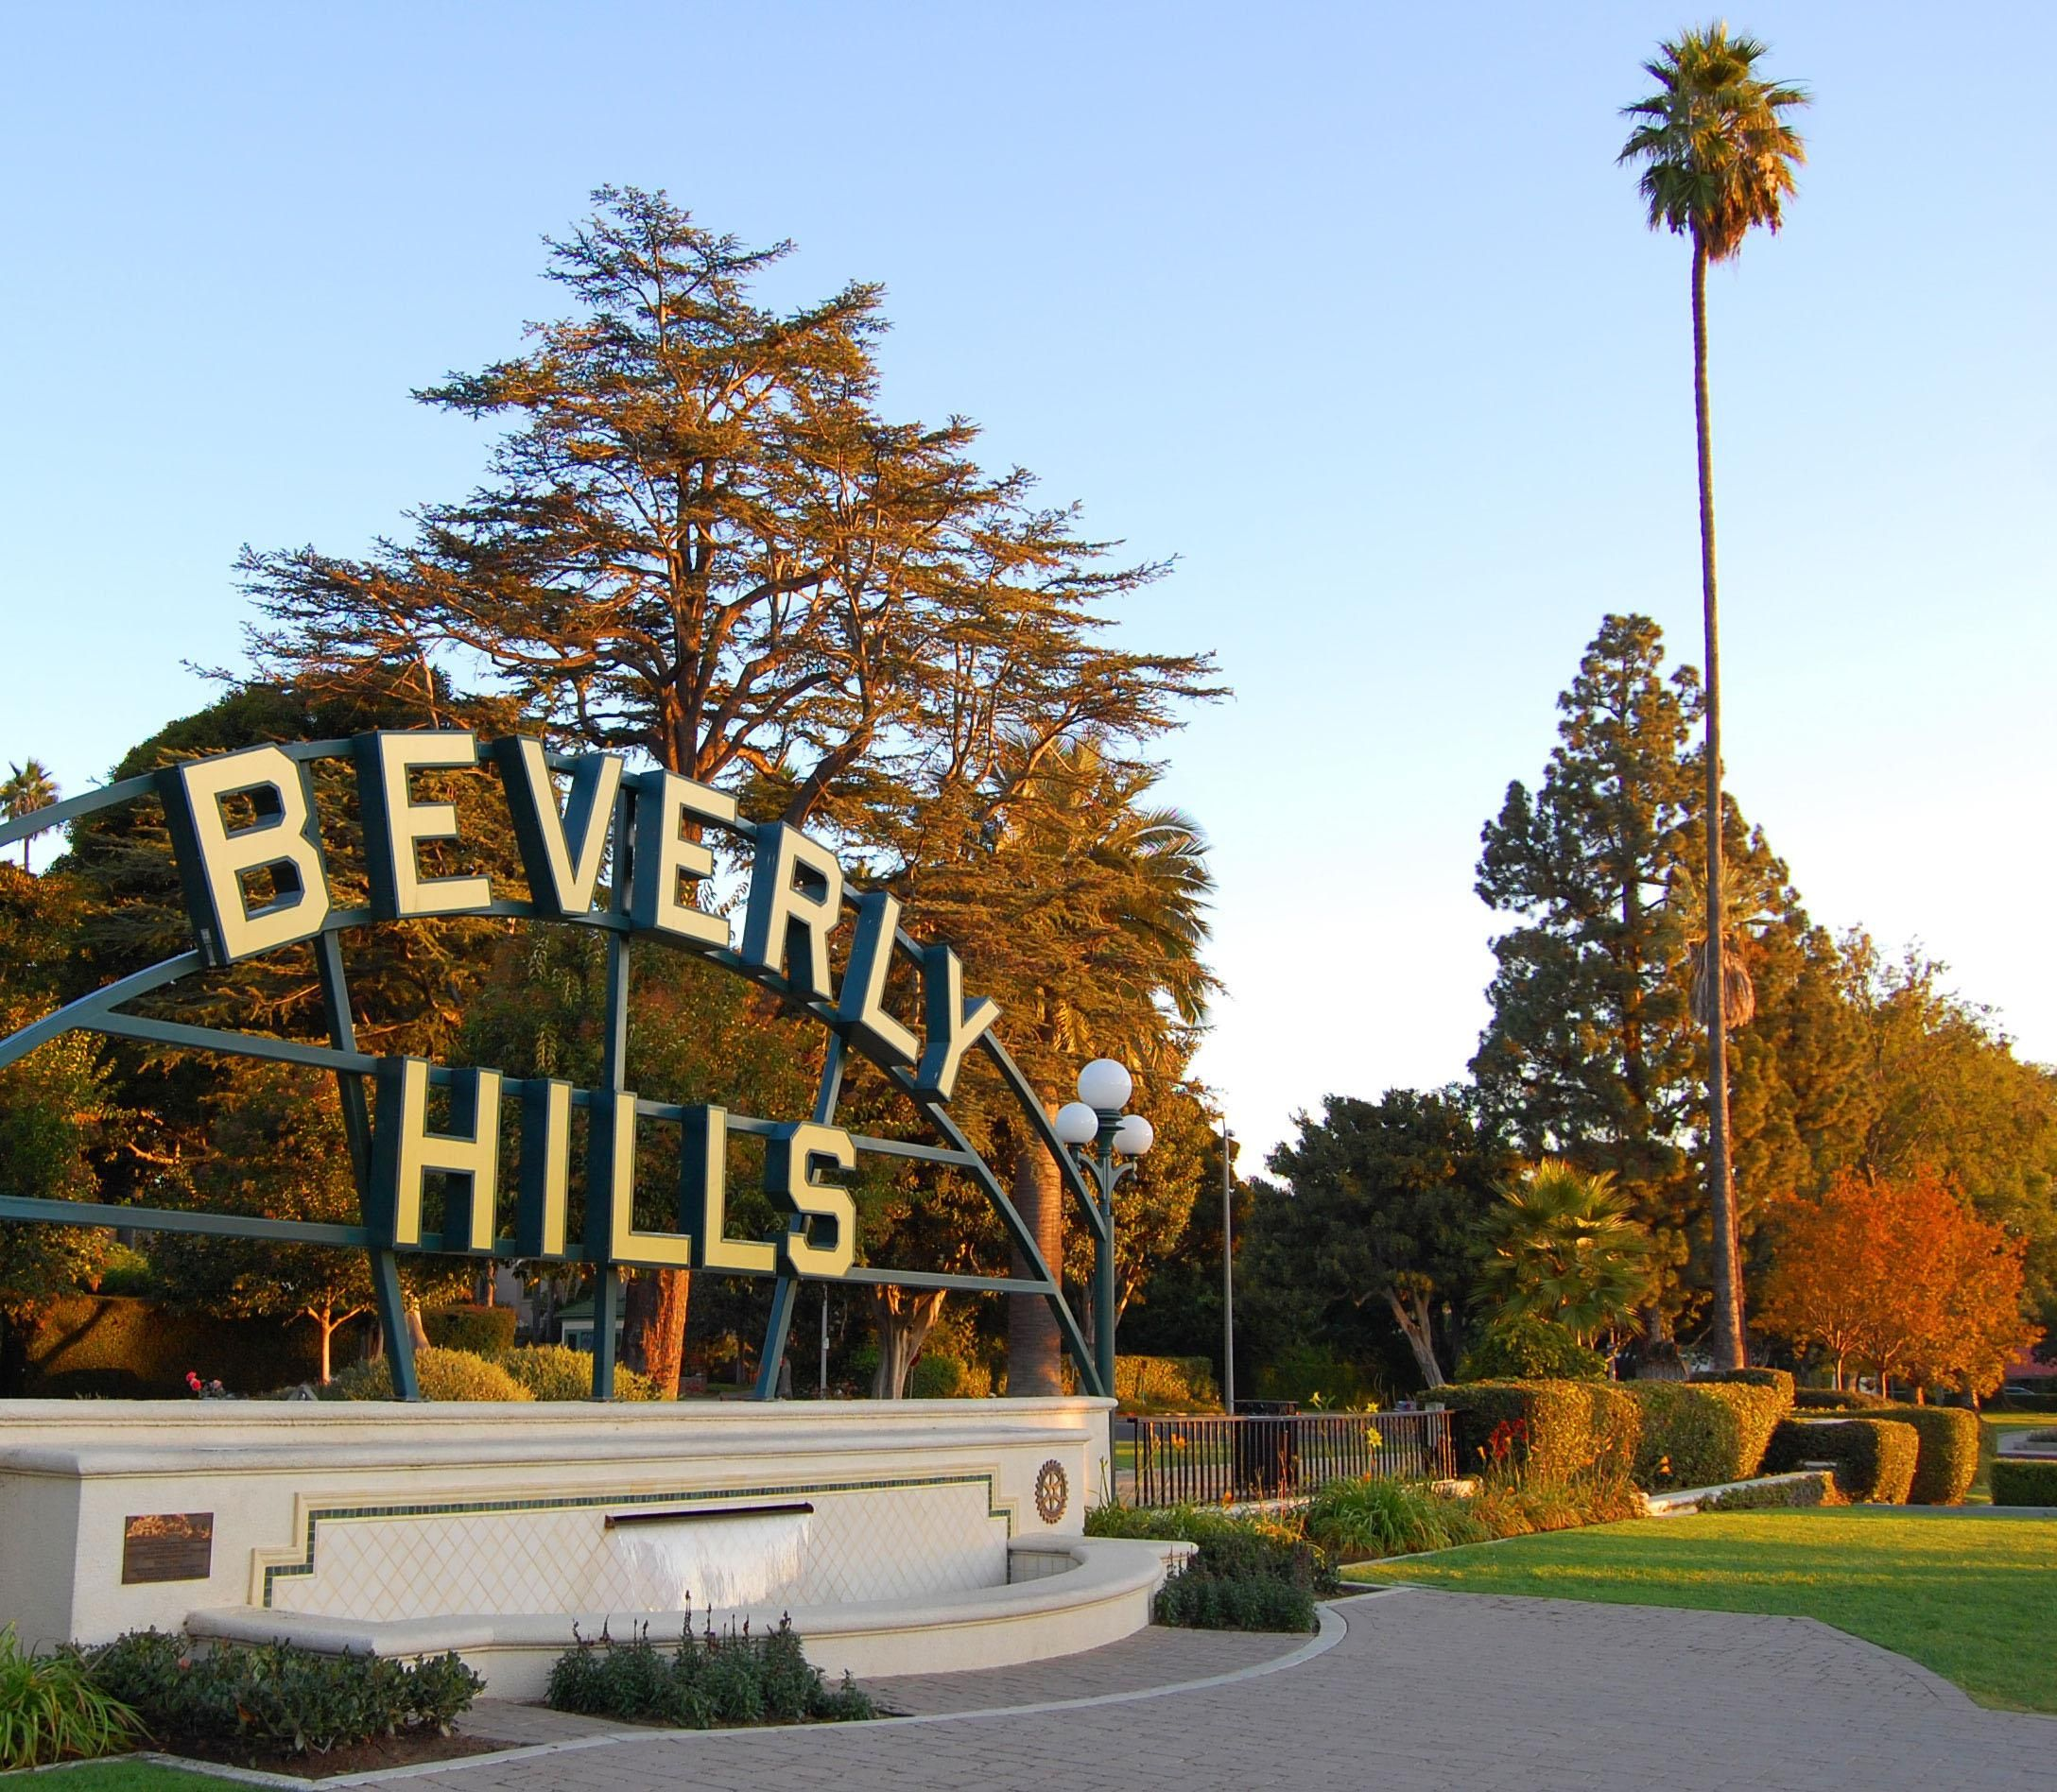 Beverly Gardens Park   Beverly hills sign, California travel, Los angeles  travel